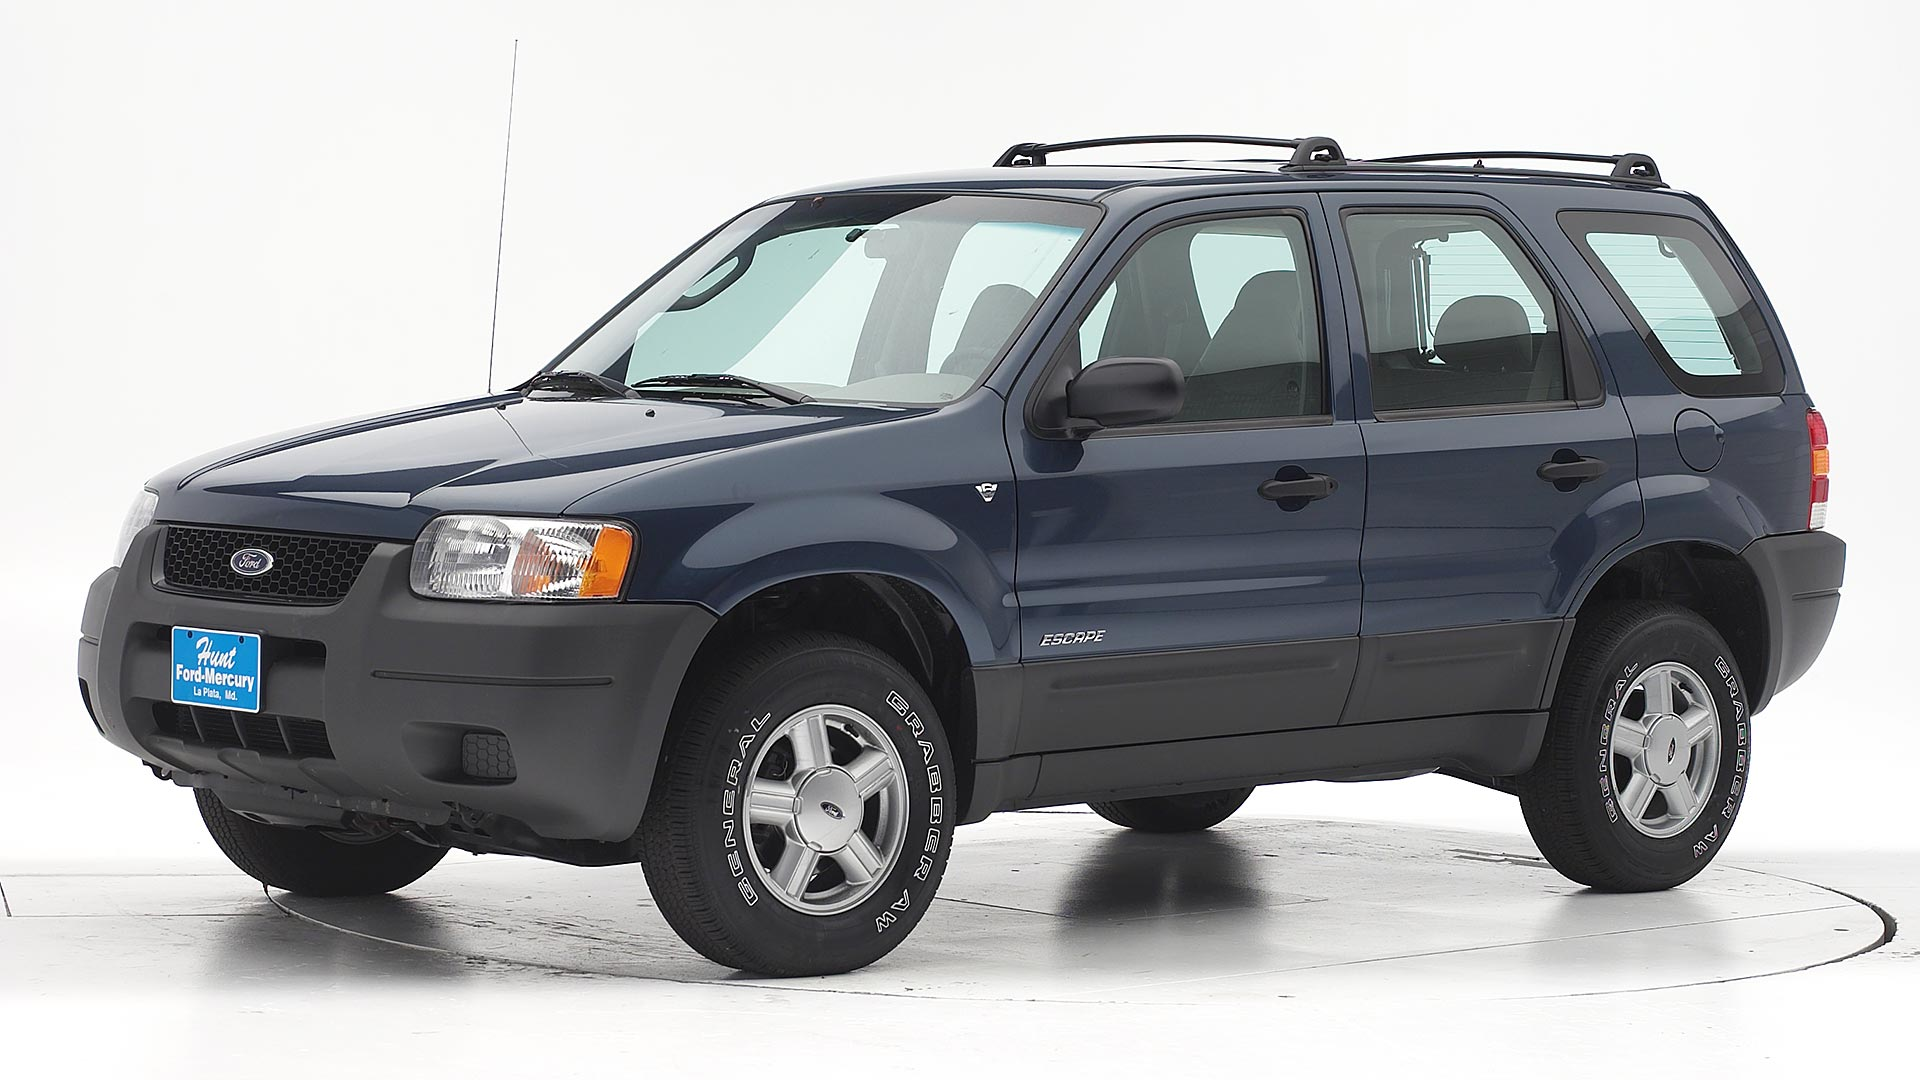 2001 Ford Escape 4-door SUV